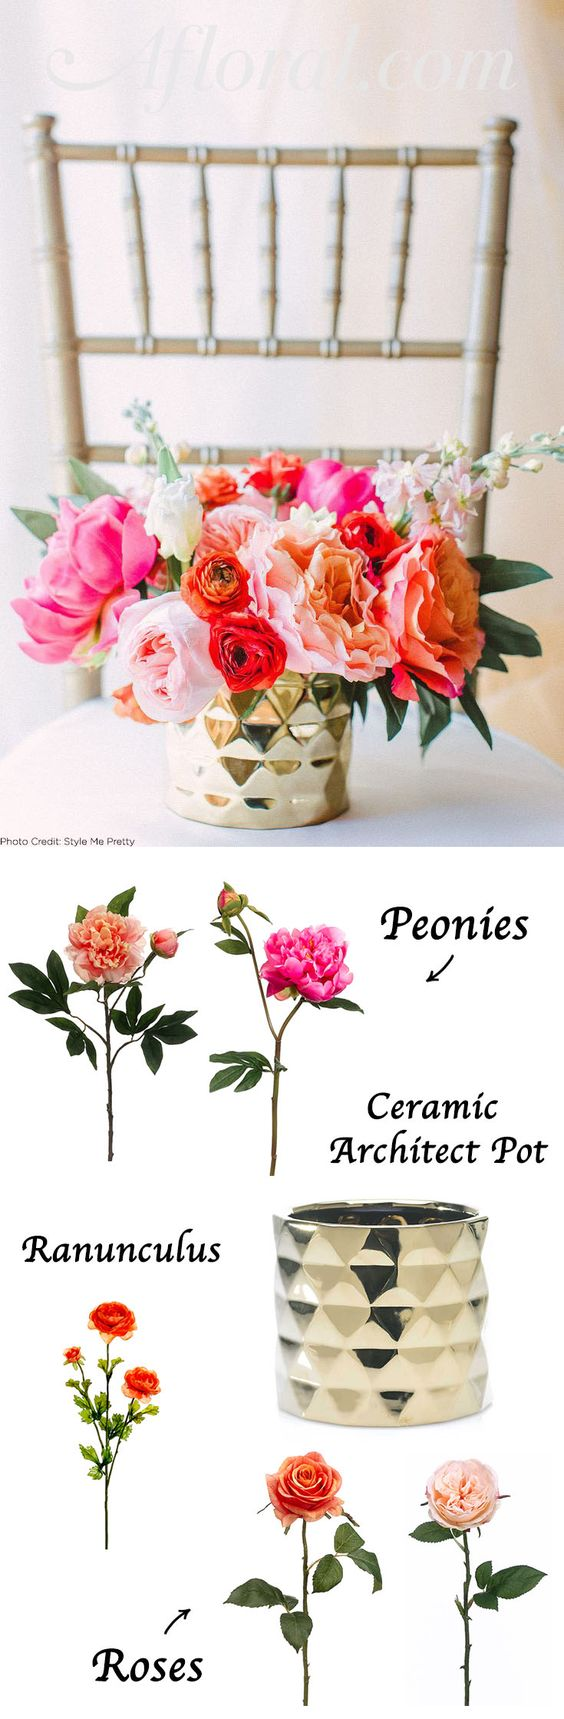 best images about floral on pinterest